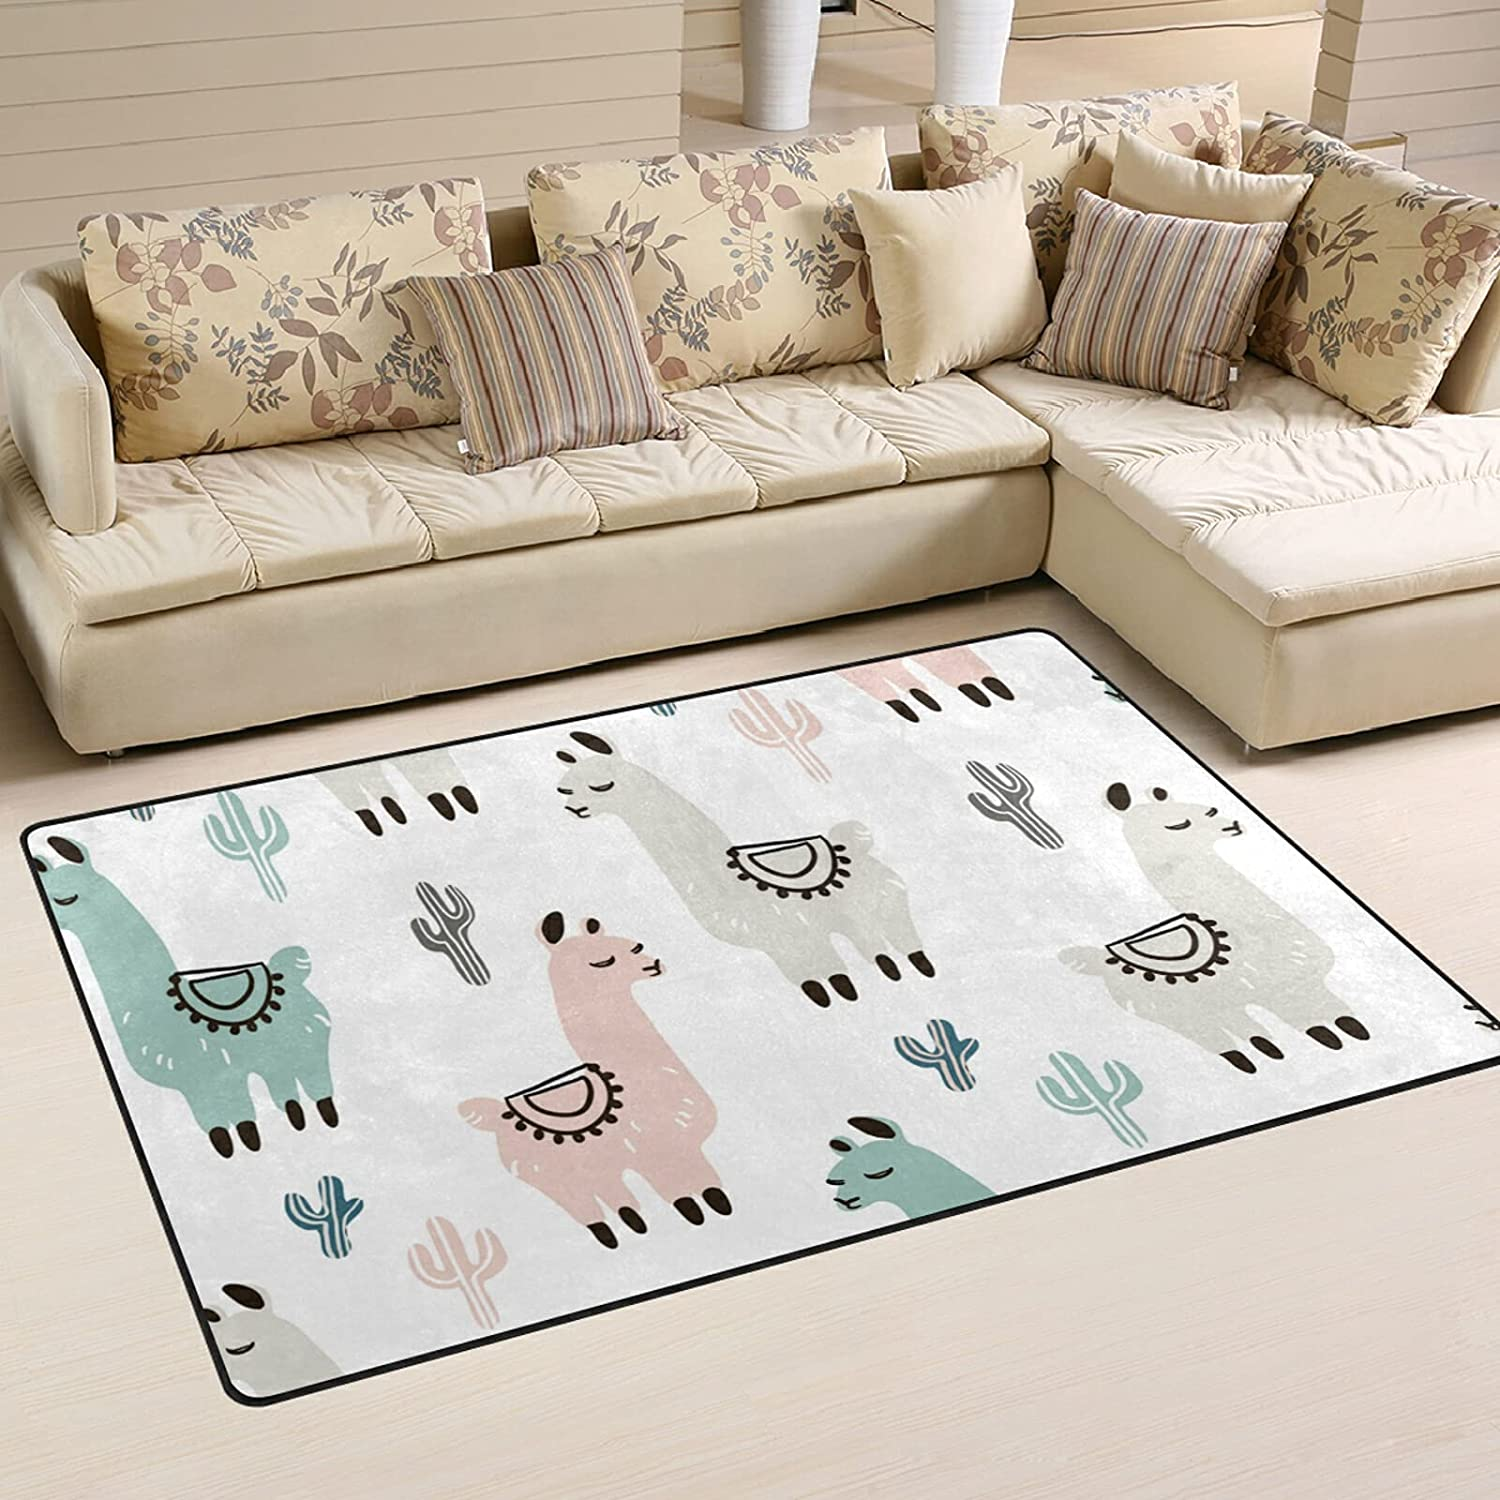 New Shipping Free Shipping Hand Drawn Colorful Llama Large Soft Area R Rugs Playmat Super special price Nursery